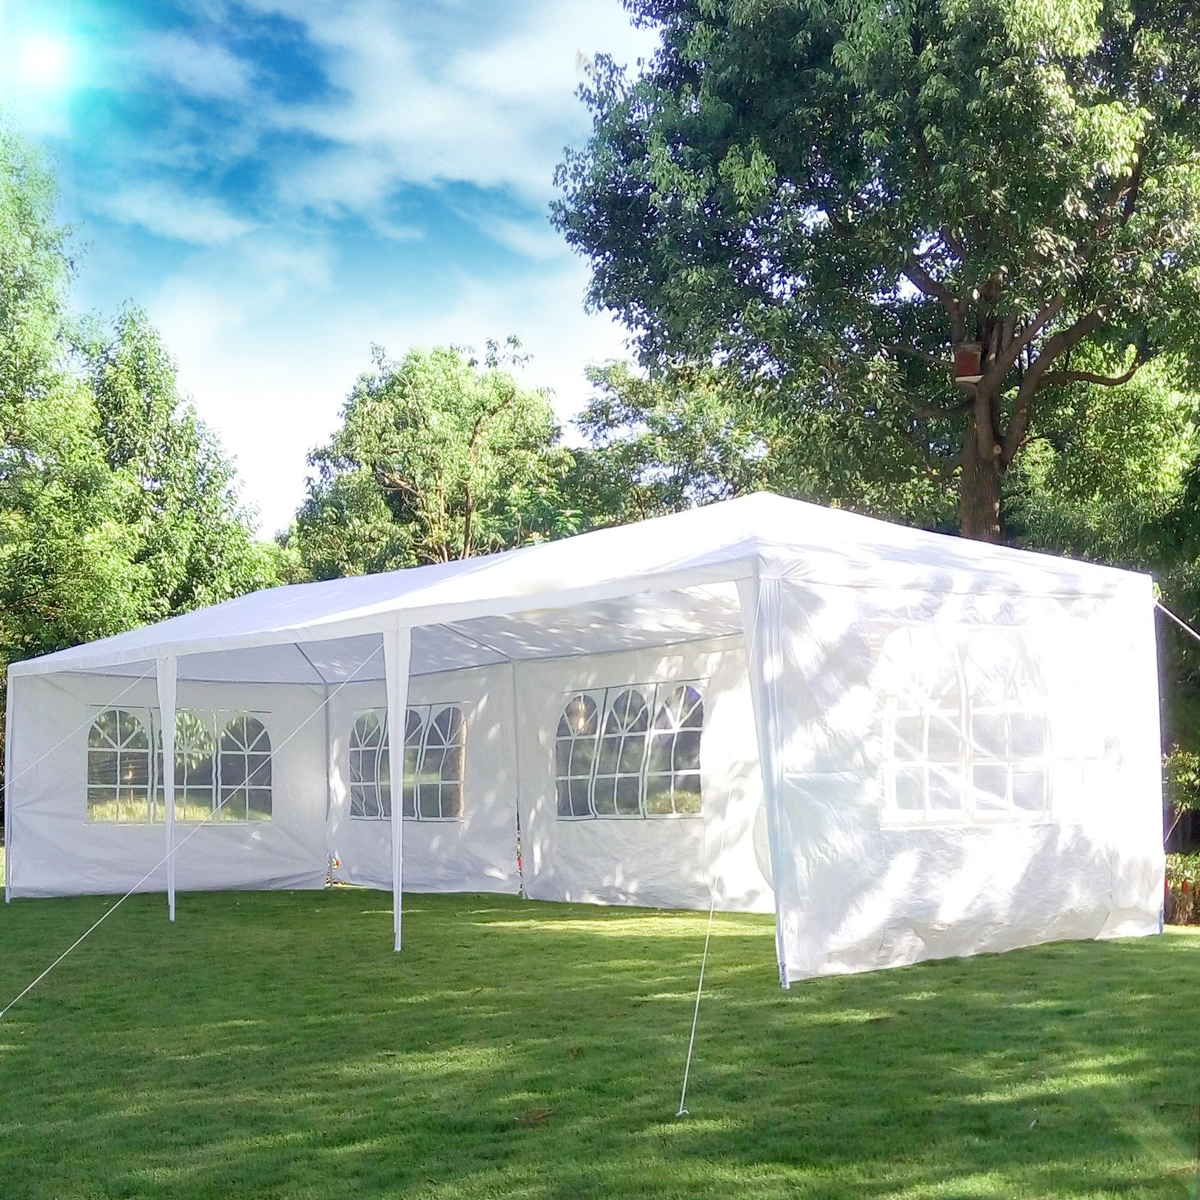 eWarehouseDirect New 10'x30' Party Wedding Outdoor Patio Tent Canopy Heavy duty Gazebo Pavilion by